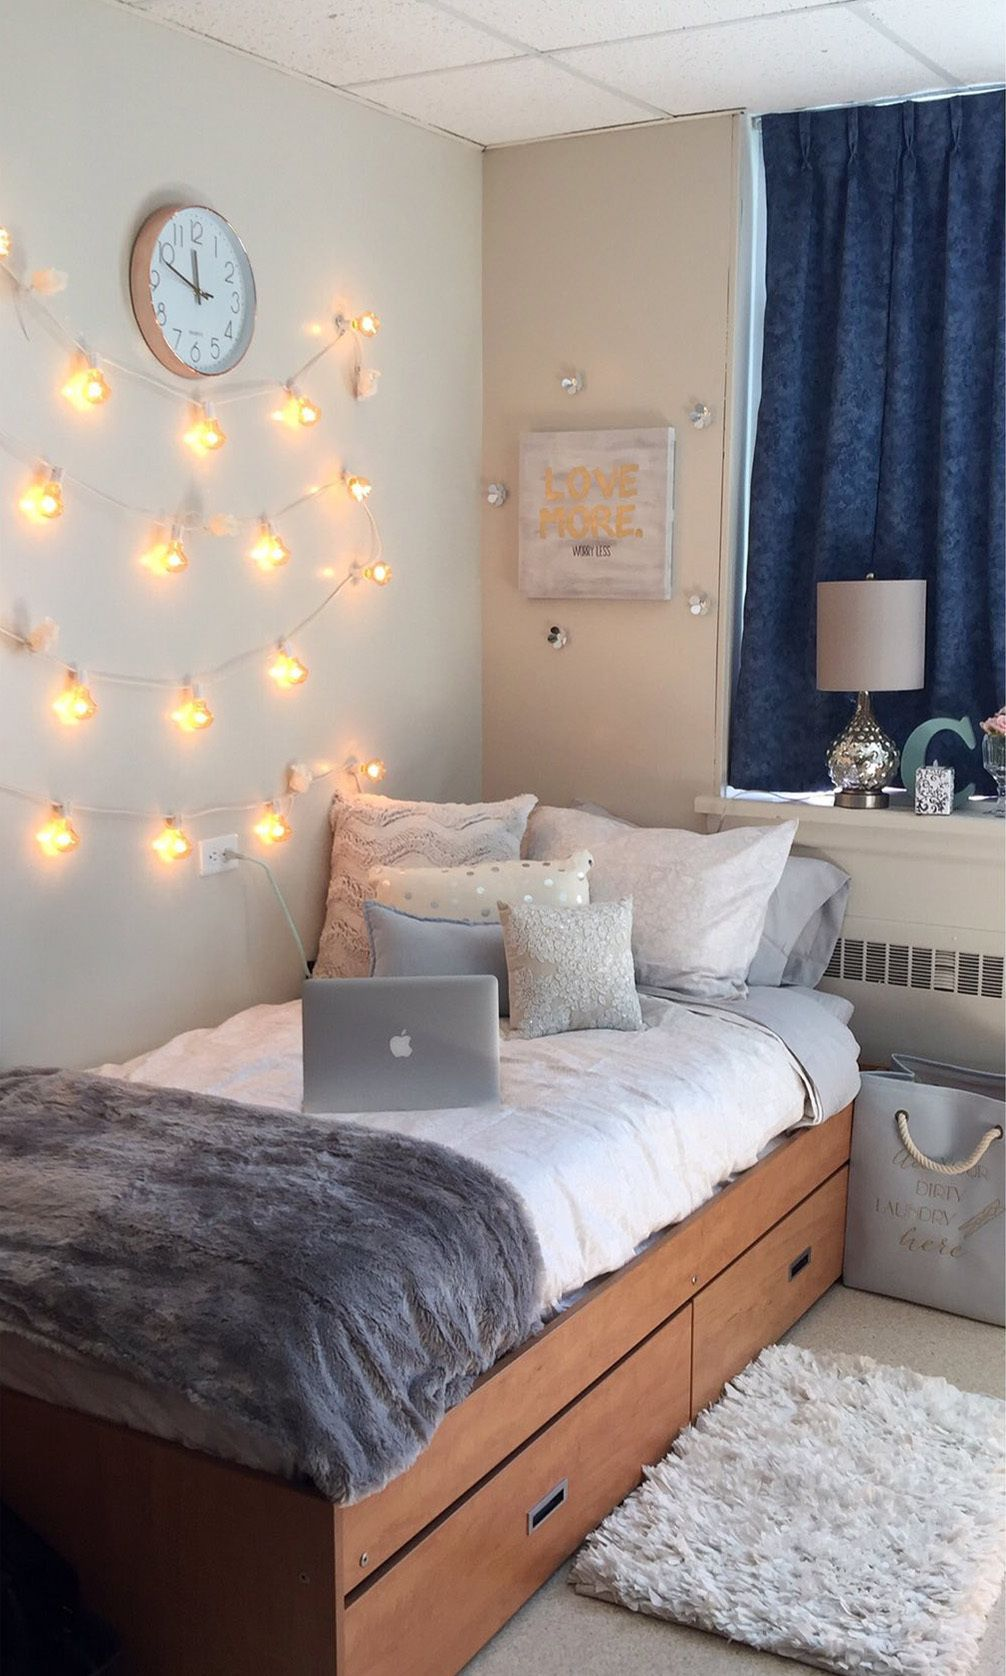 """Photo of 36 Dorm Room """"Before and Afters"""" That'll Totally Inspire You"""